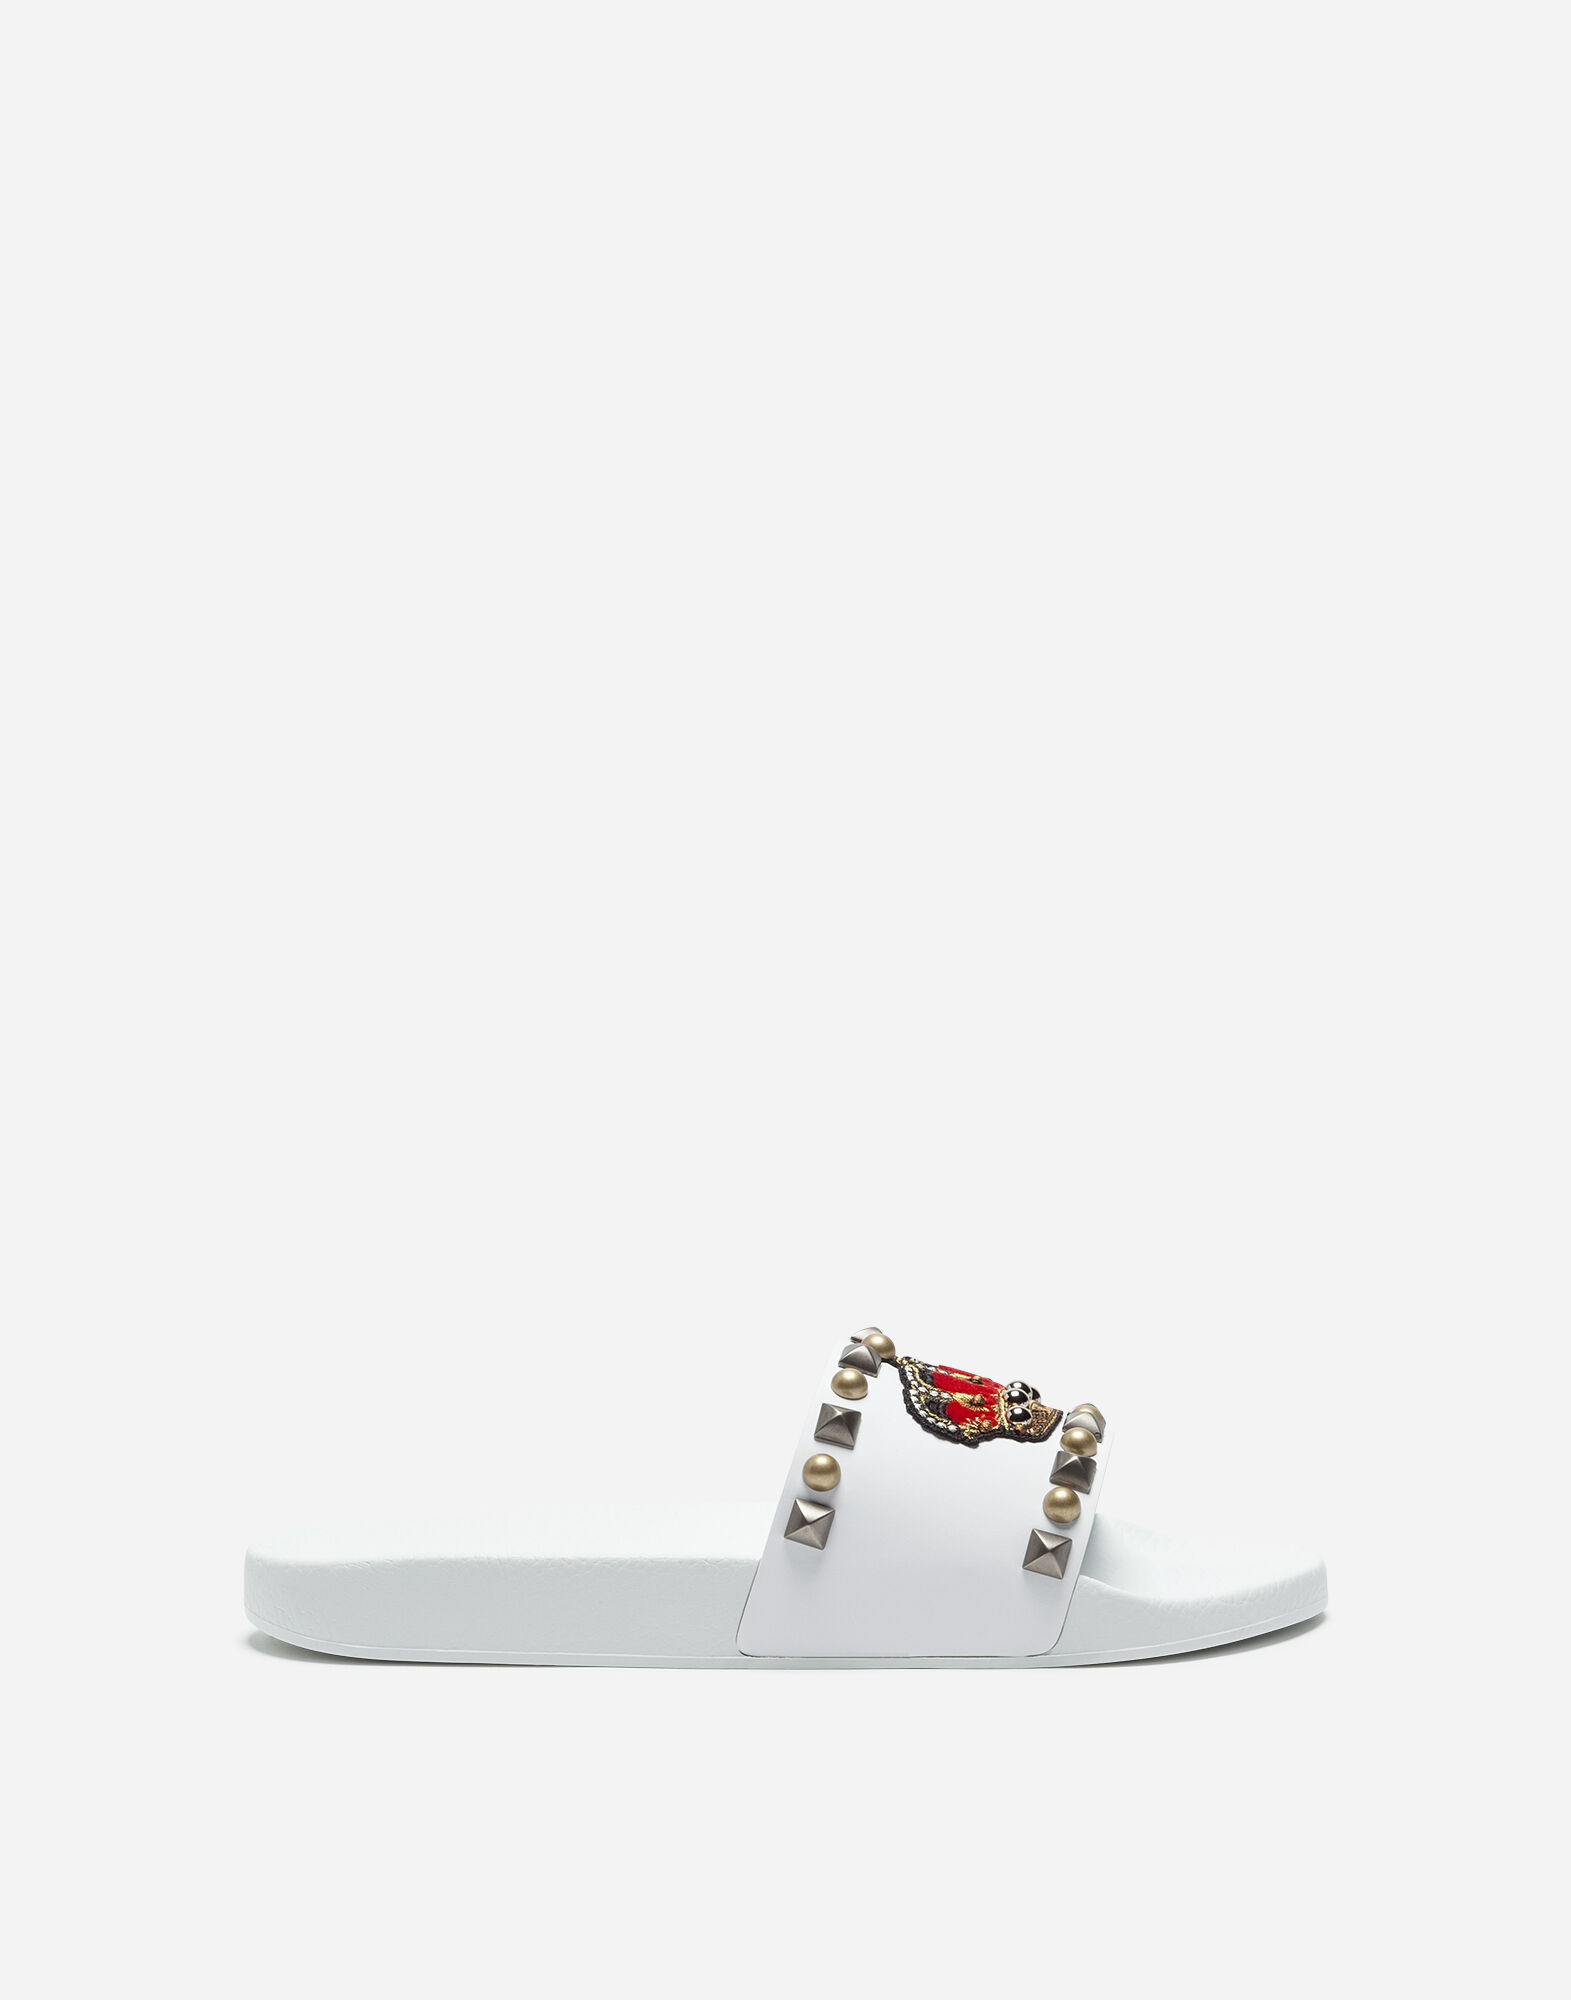 RUBBER AND CALFSKIN SLIDERS WITH DECORATIVE DETAILS from DOLCE & GABBANA